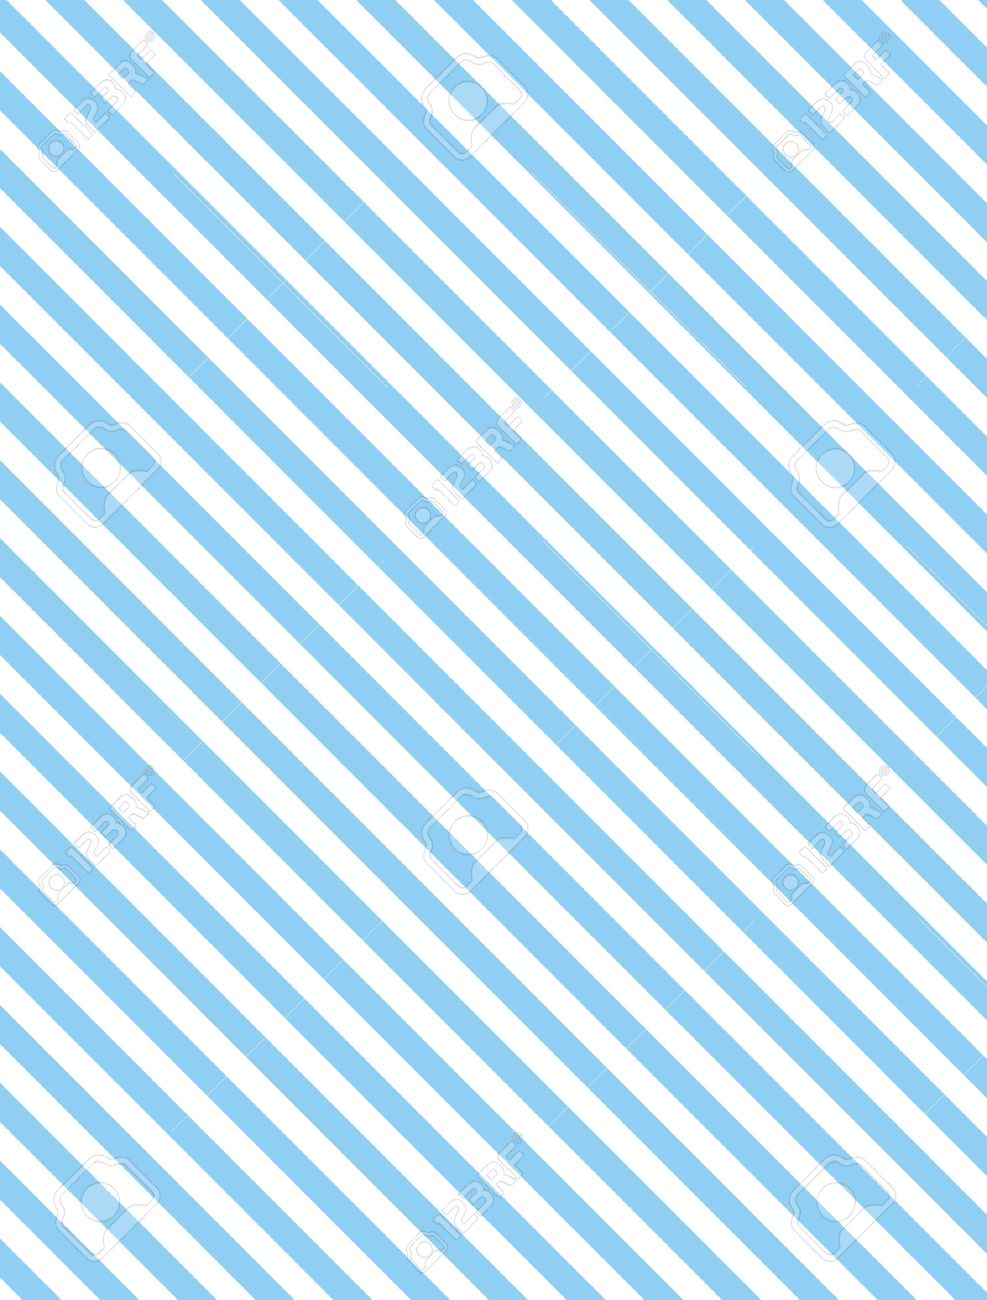 Seamless, continuous, diagonal striped background in blue and white. - 7256361